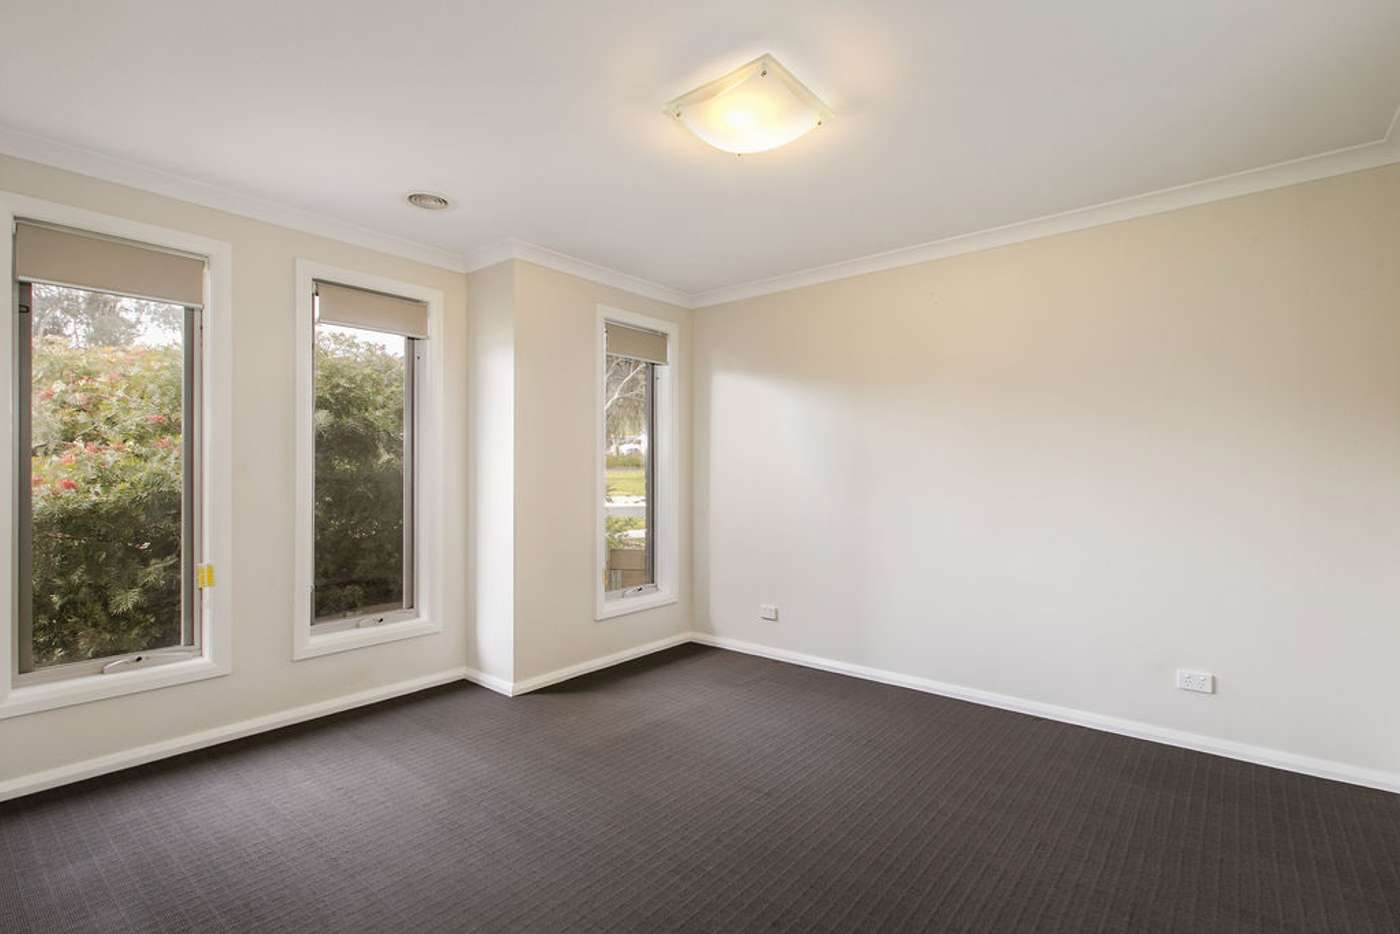 Sixth view of Homely house listing, 24 Jacka Street, Wodonga VIC 3690